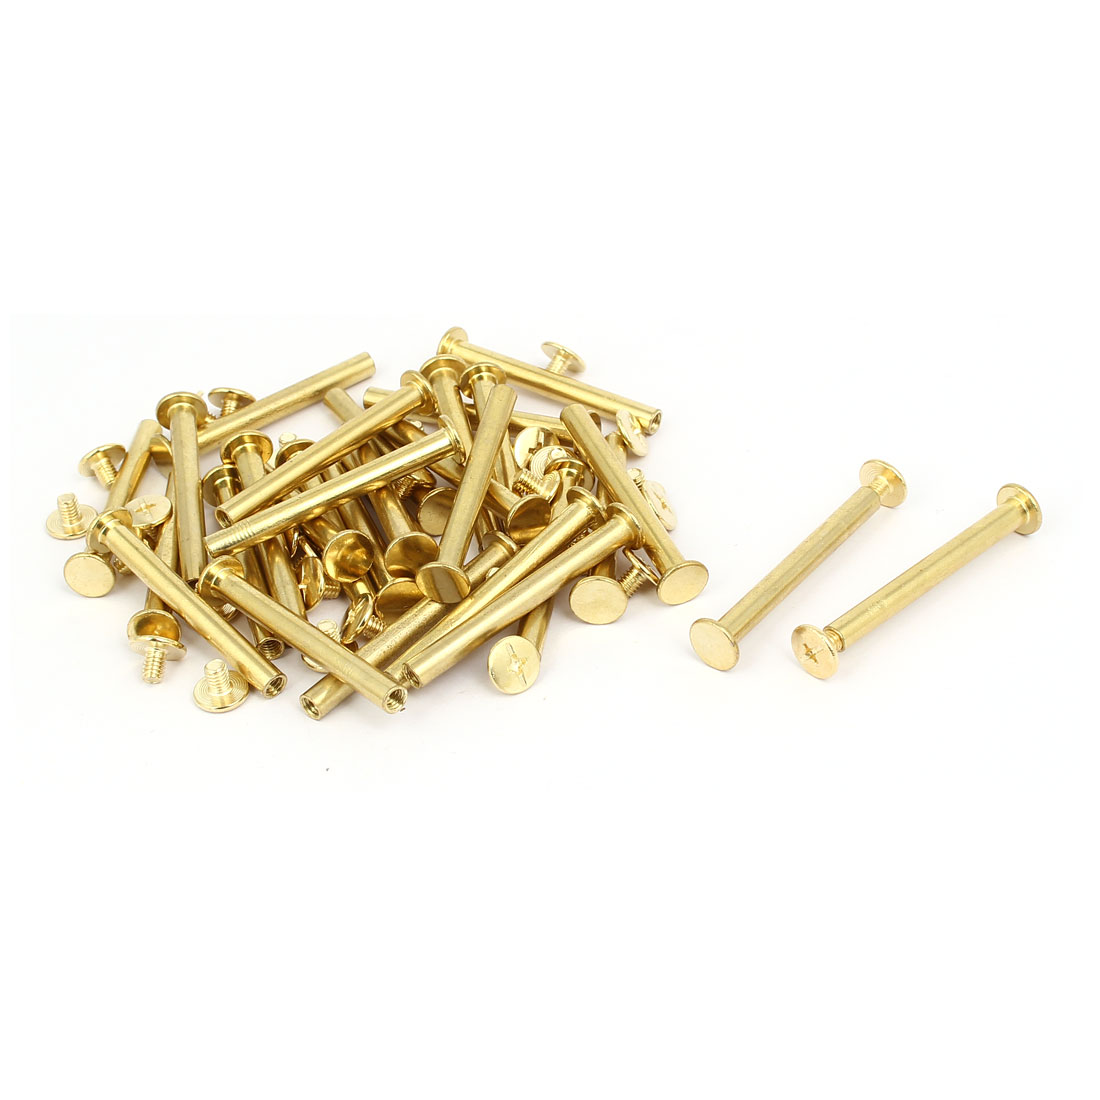 M5x45mm Binding Screw Post Gold Tone 30pcs for Photo Albums Scrapbook